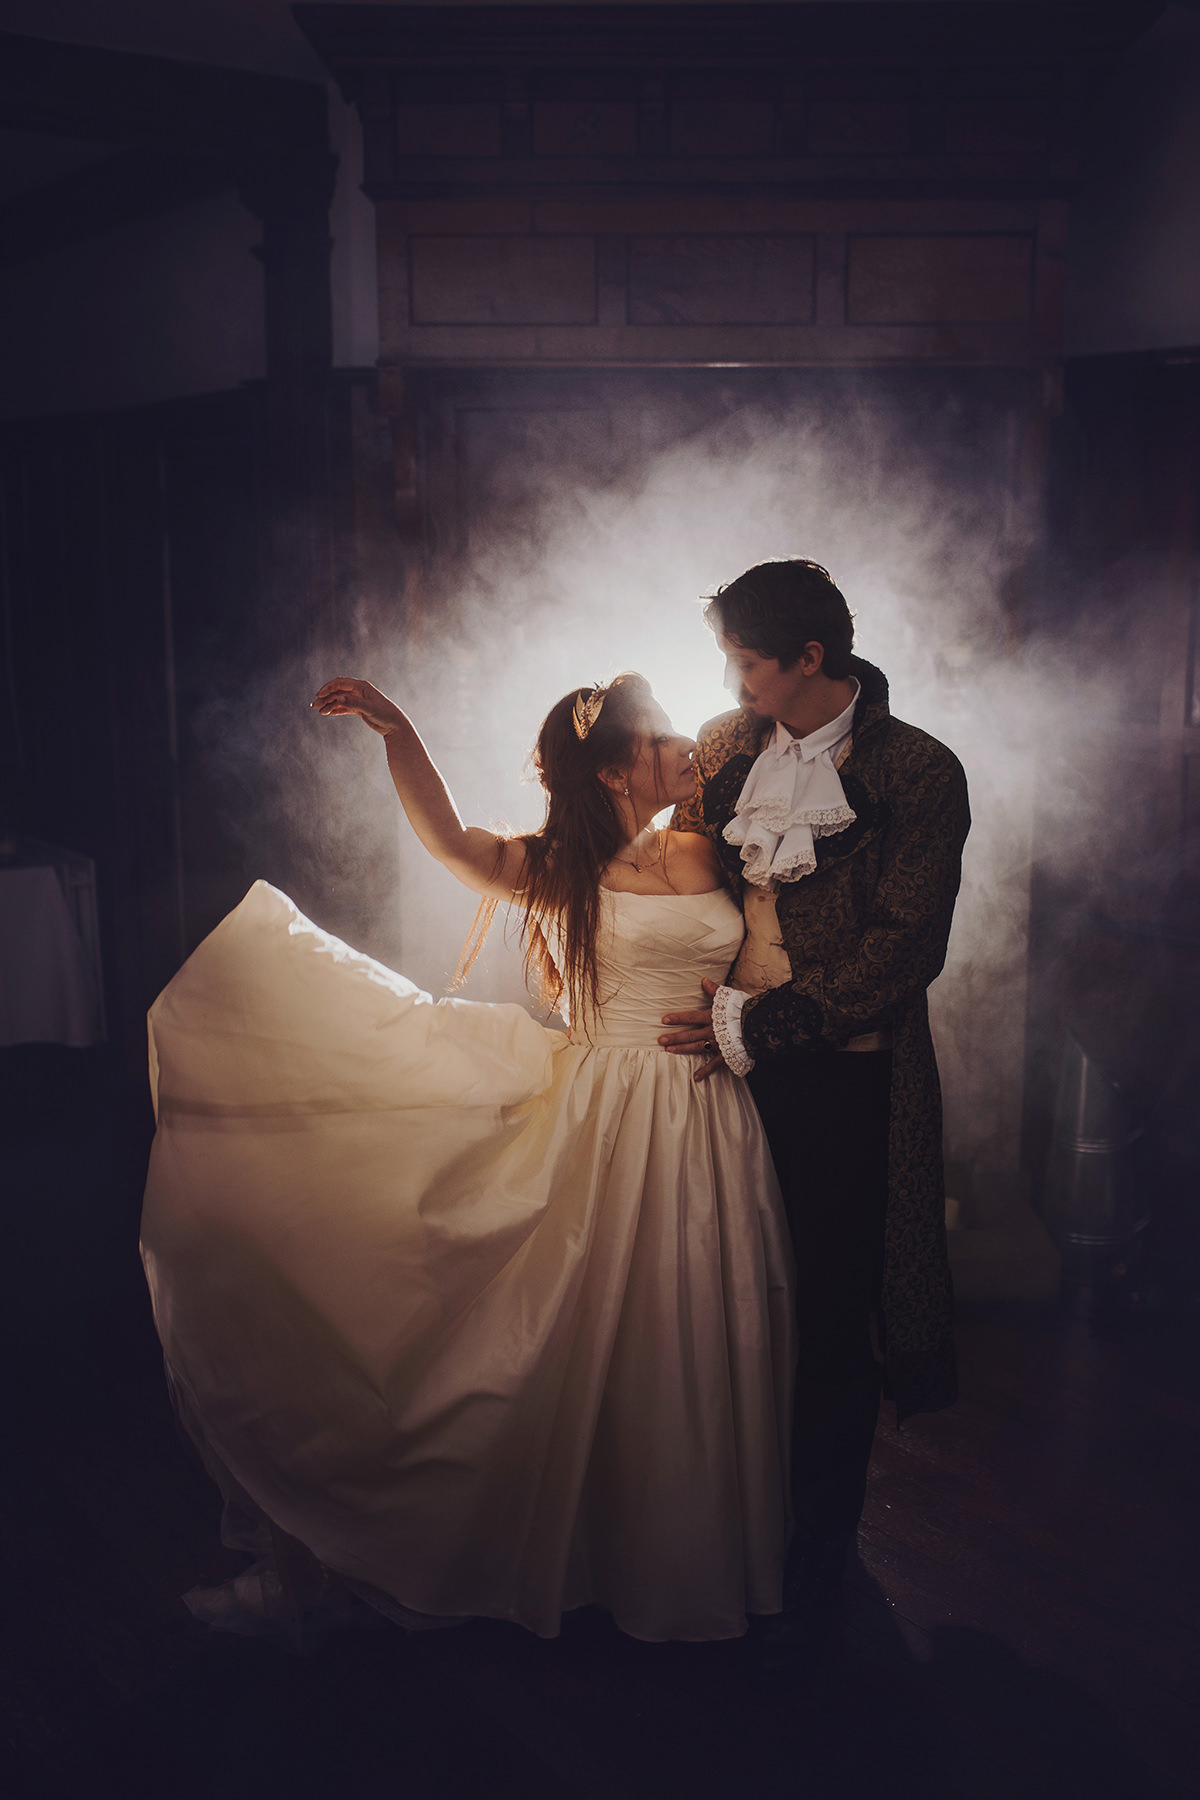 dramatic wedding couple shot from labyrinth wedding day in cornwall